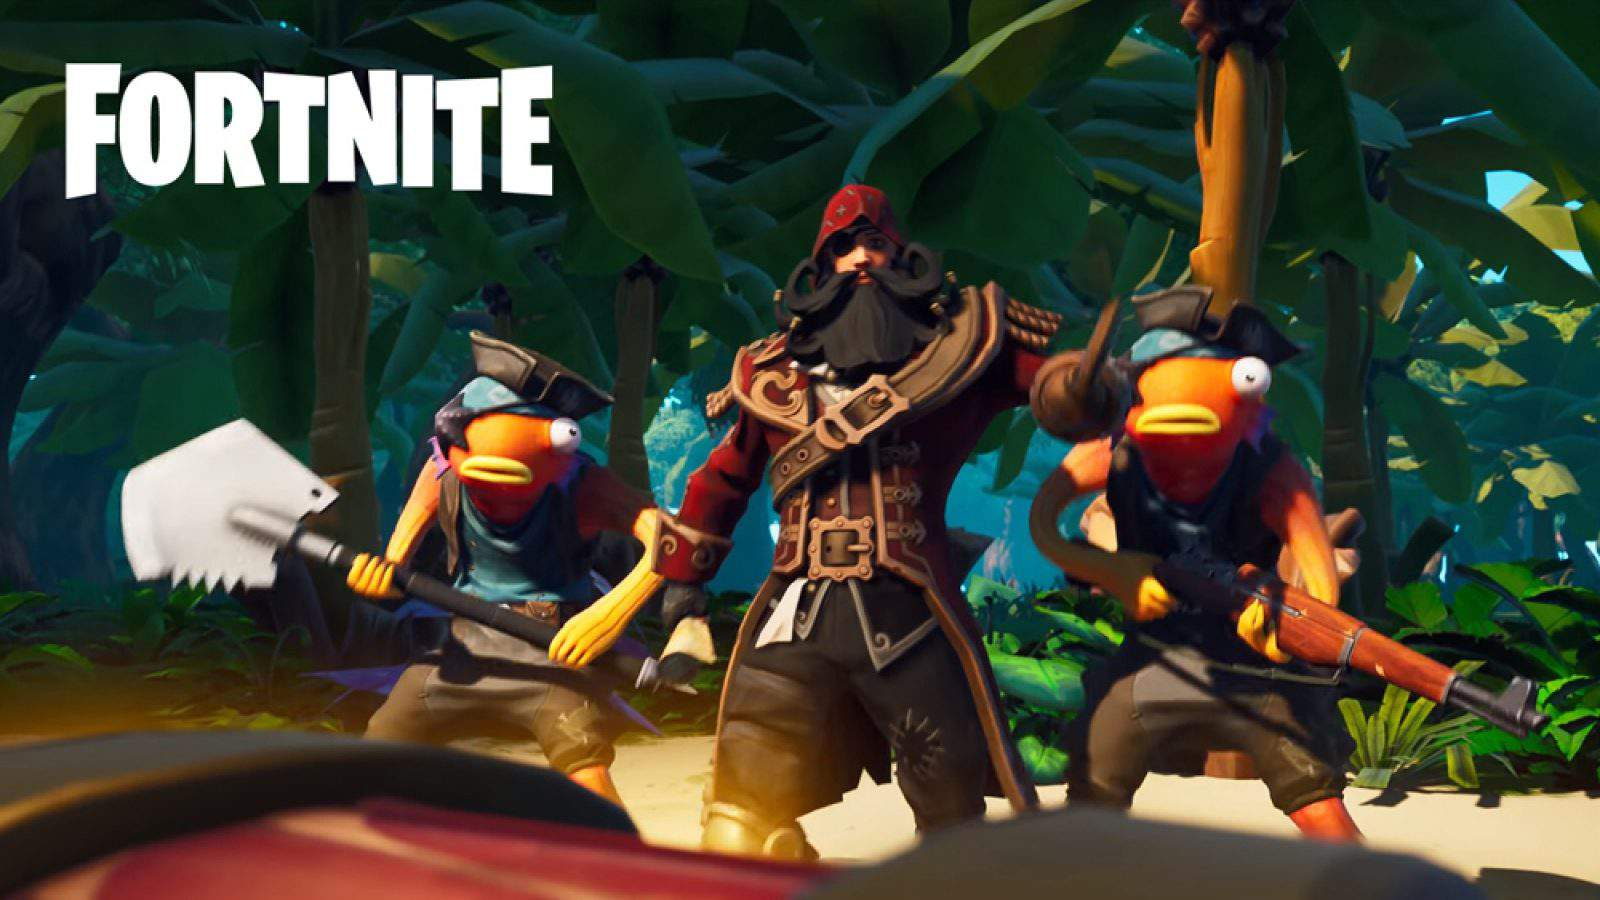 Fortnite V8 20 Potential Patch Notes Revealed By Epic Games